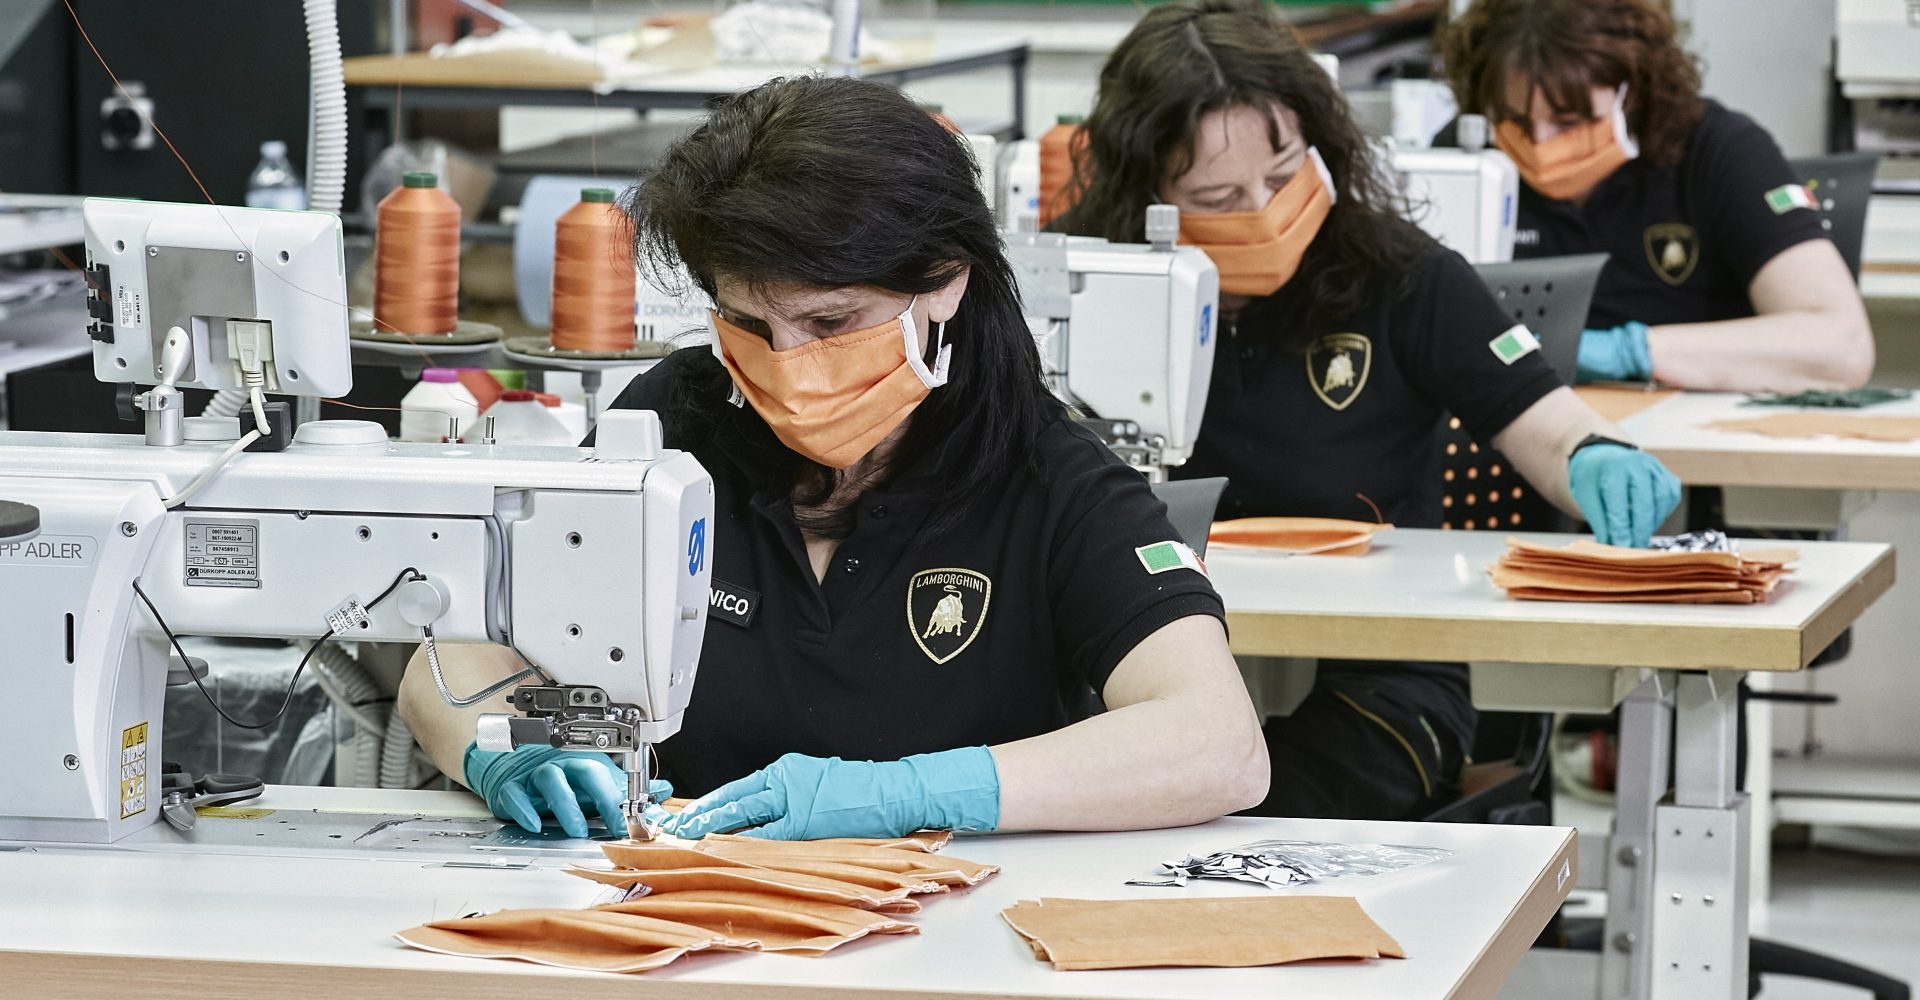 Lamborghini is making surgical masks as car industry works to fight Covid-19